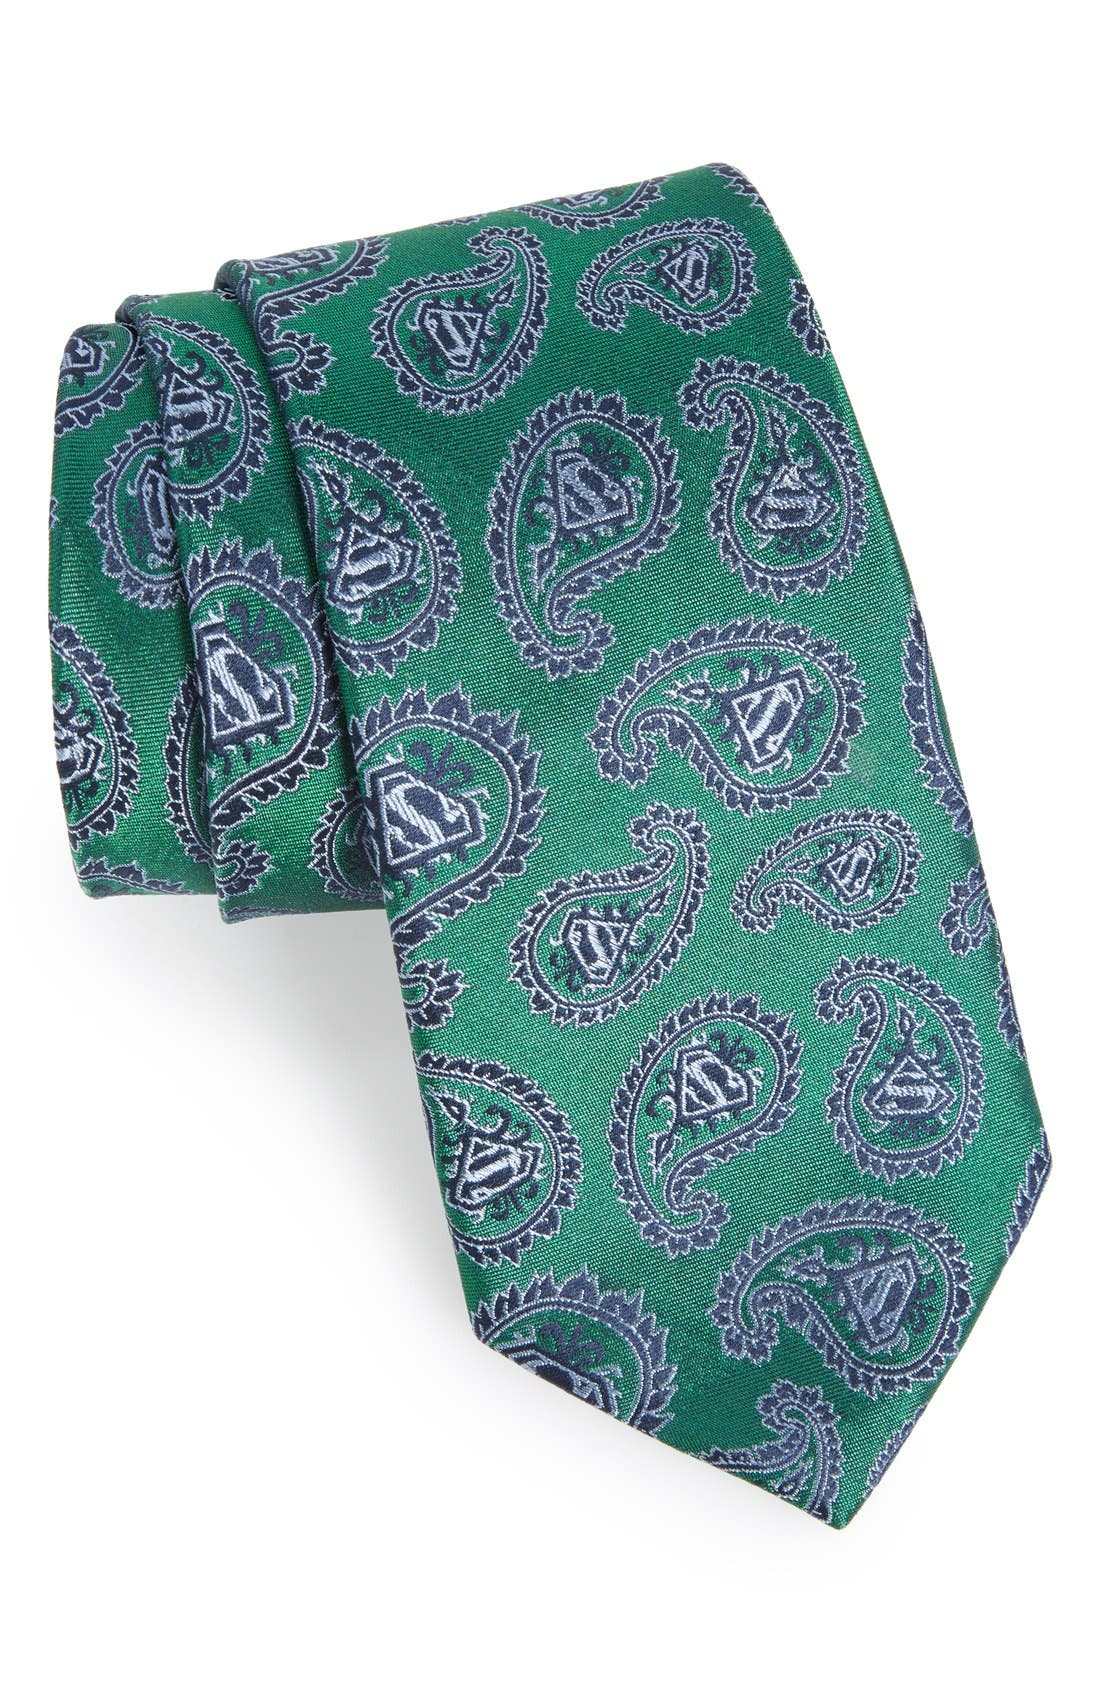 'Superman' Paisley Silk Tie,                             Main thumbnail 1, color,                             300